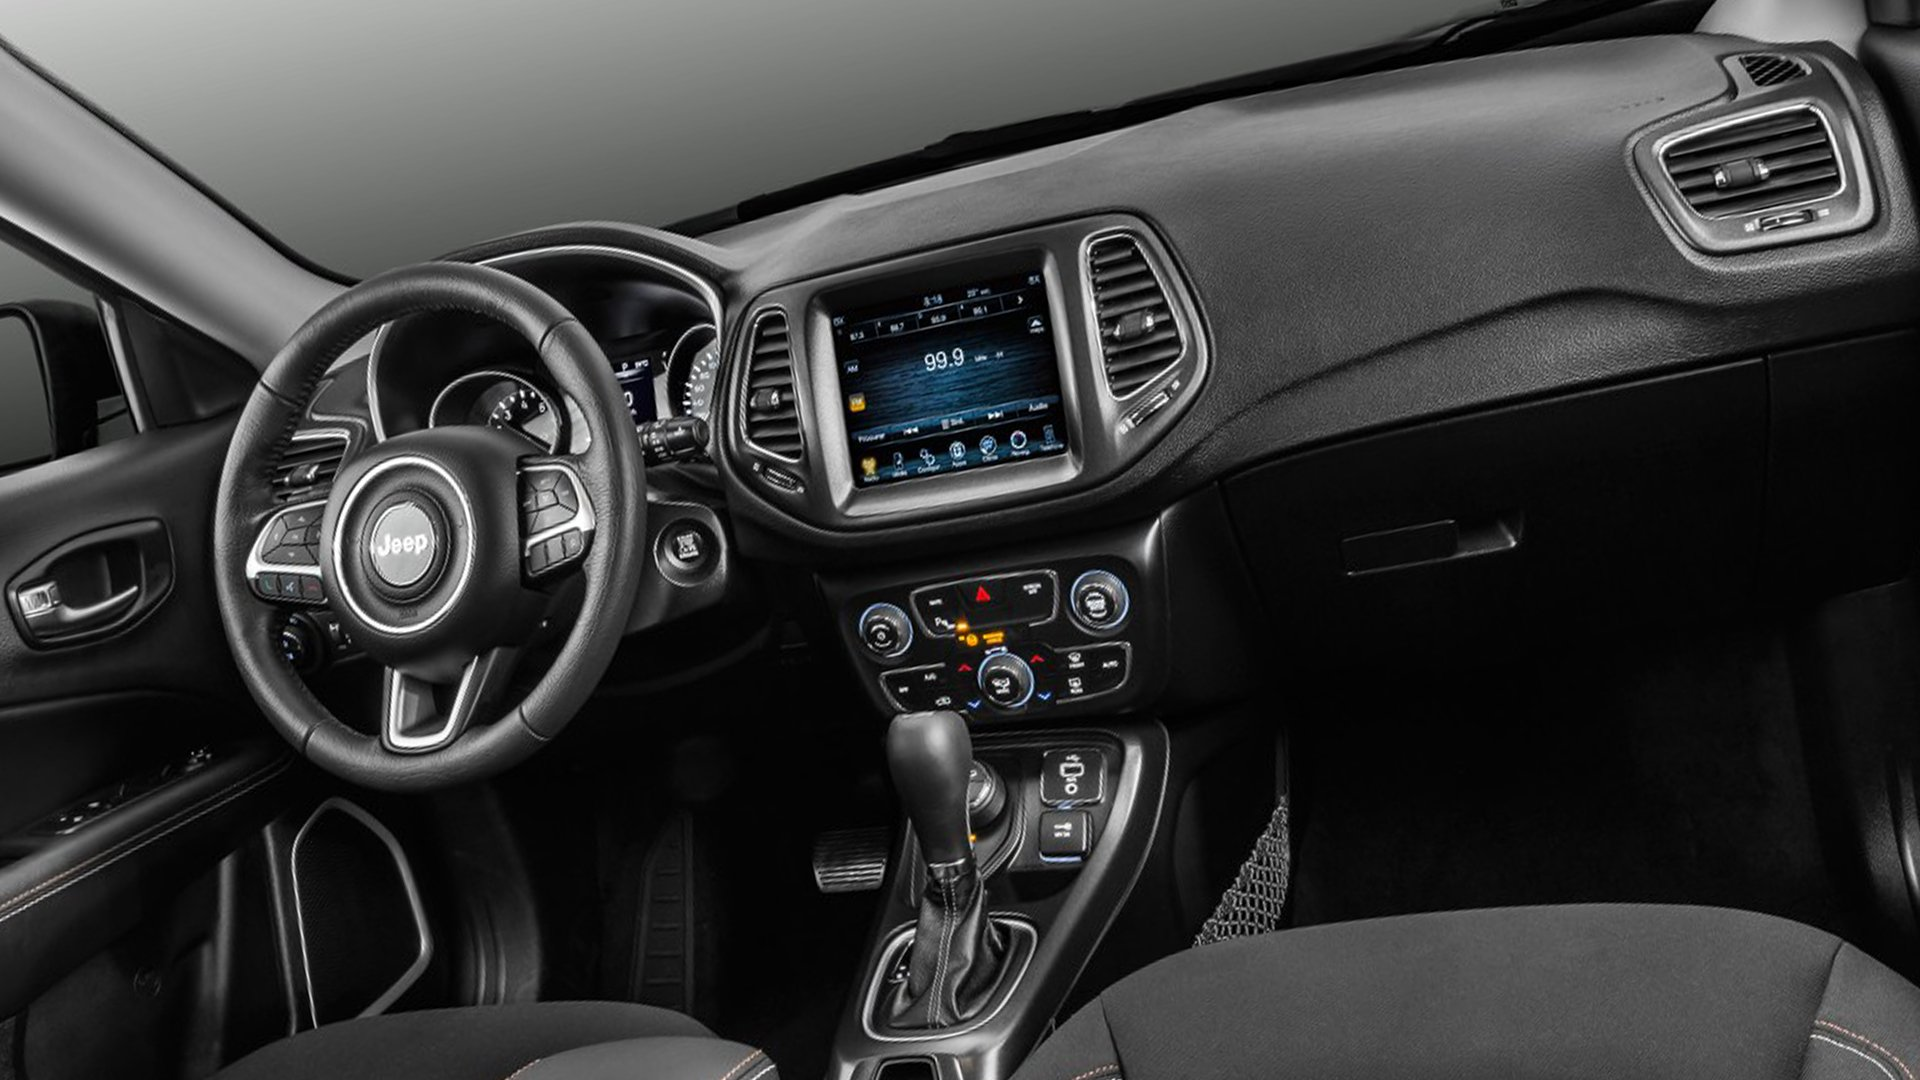 New 2019 Jeep Compass Interior Design